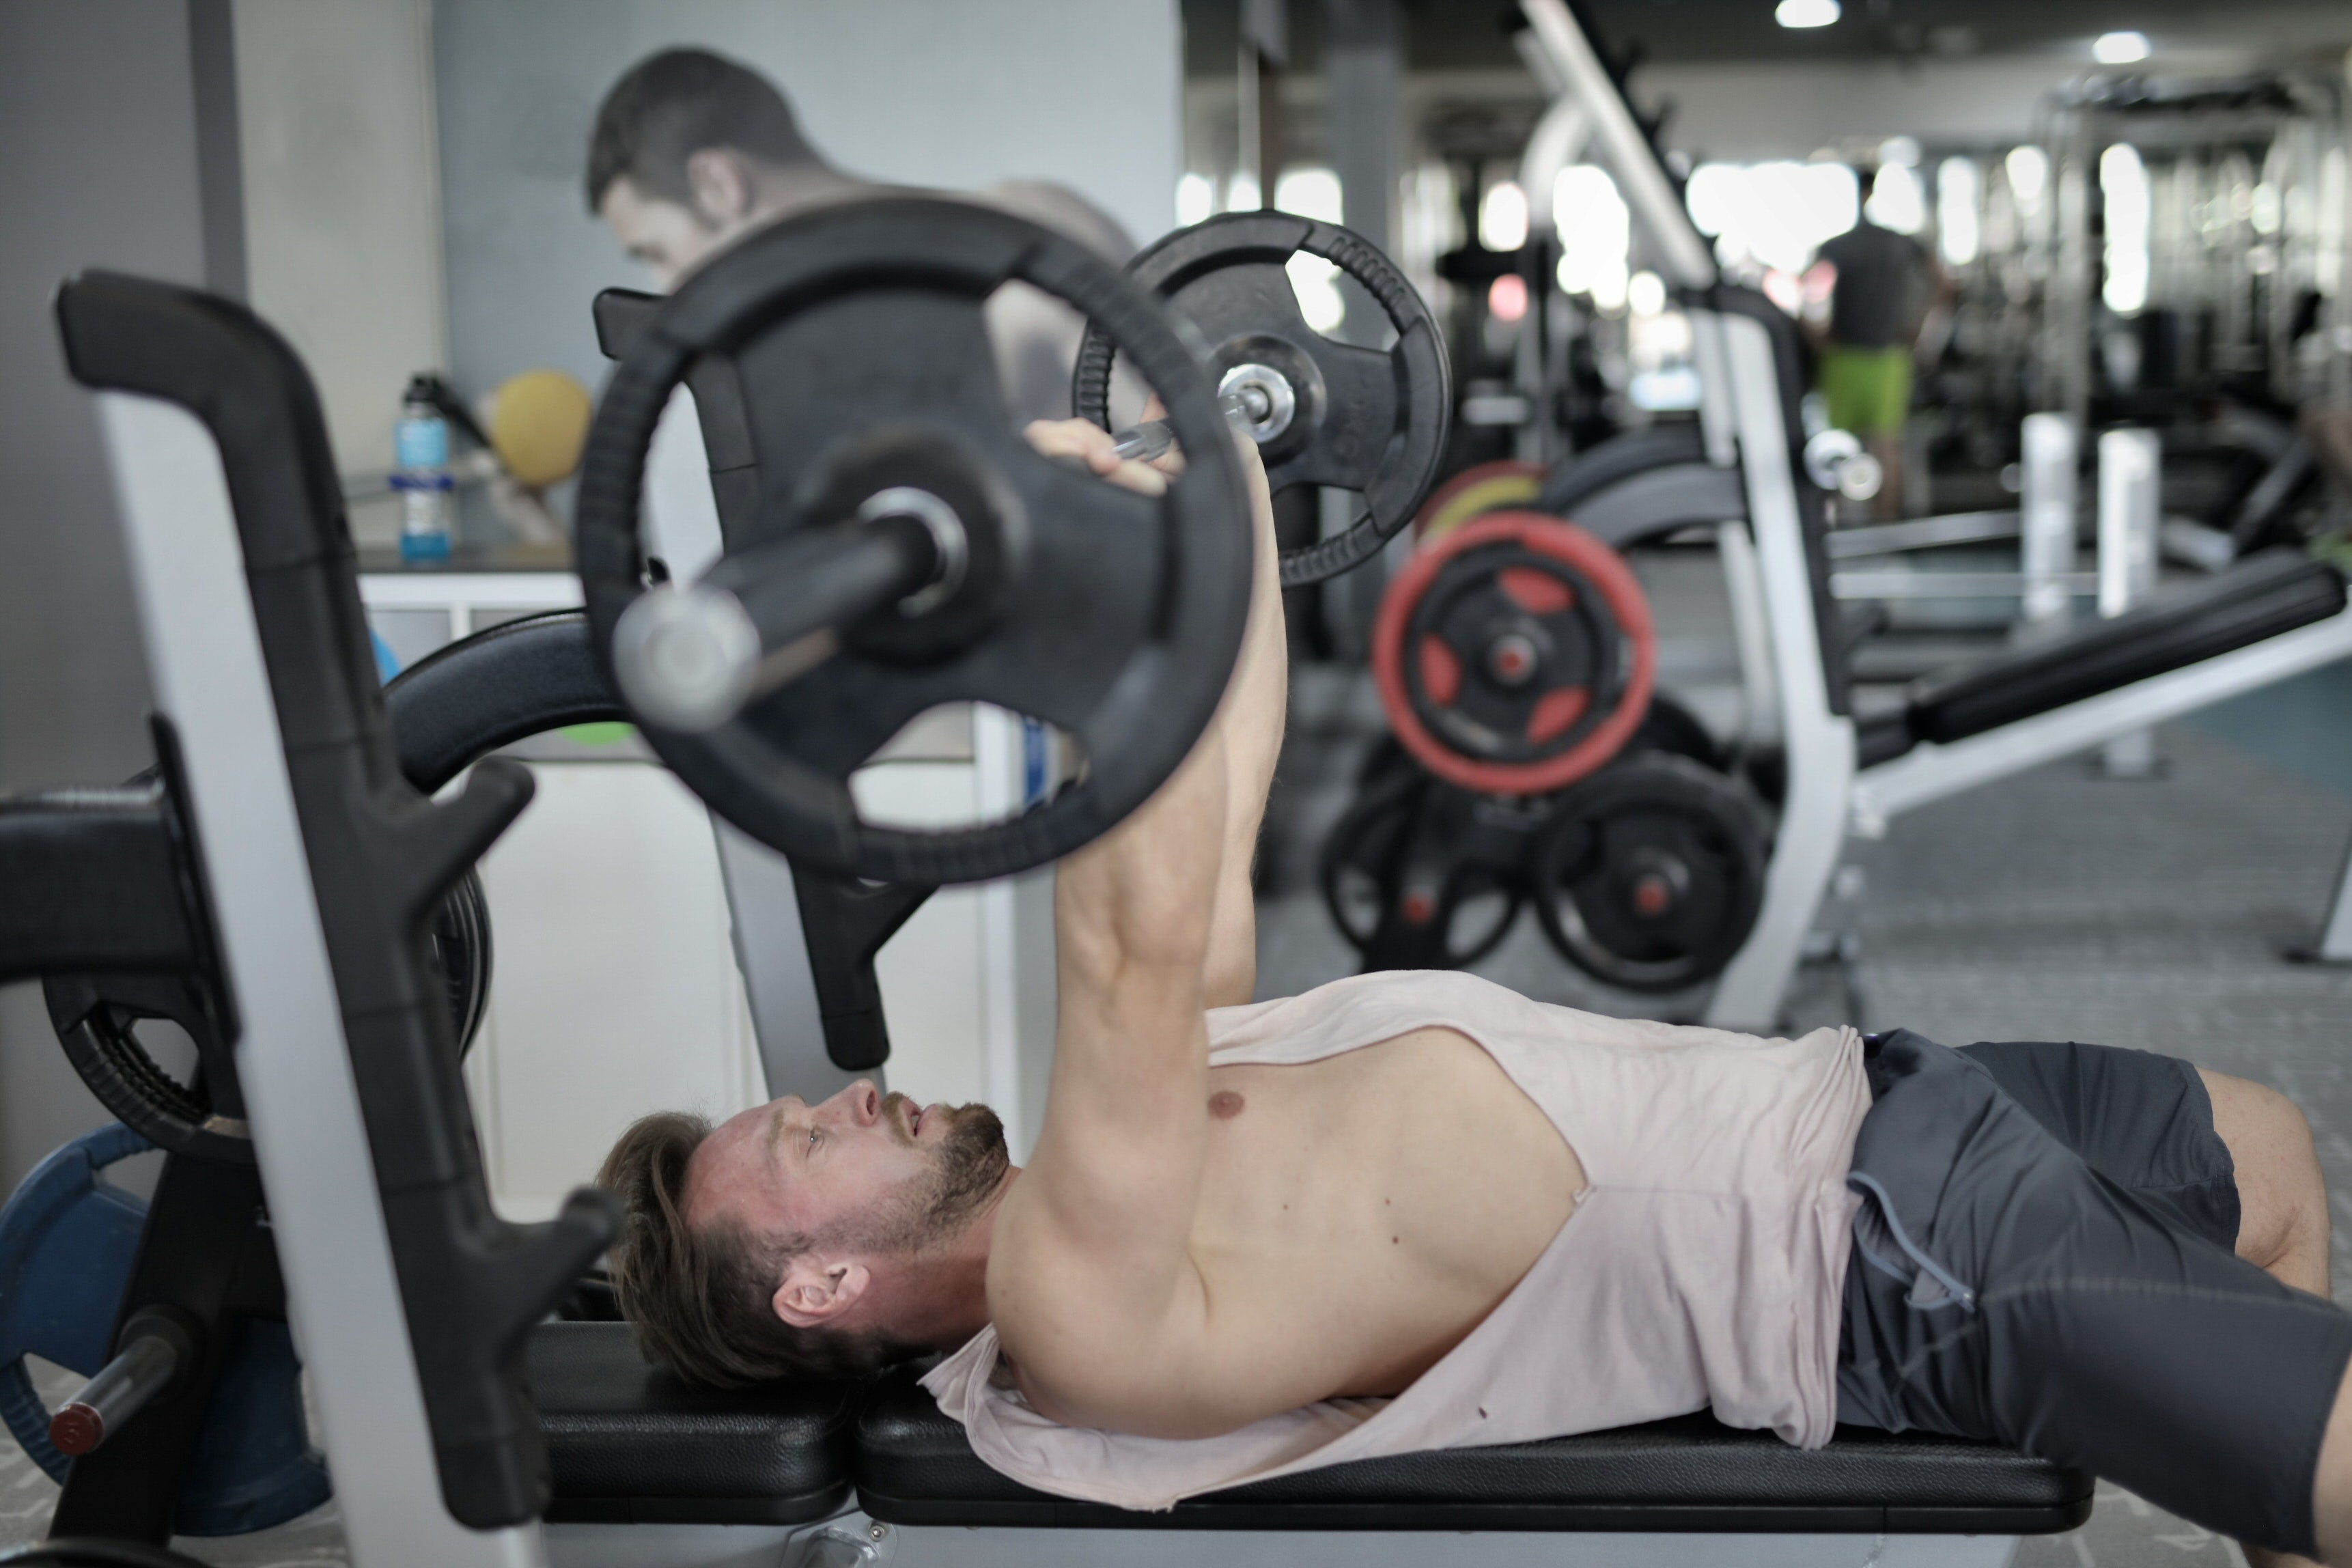 Bench Press to Success